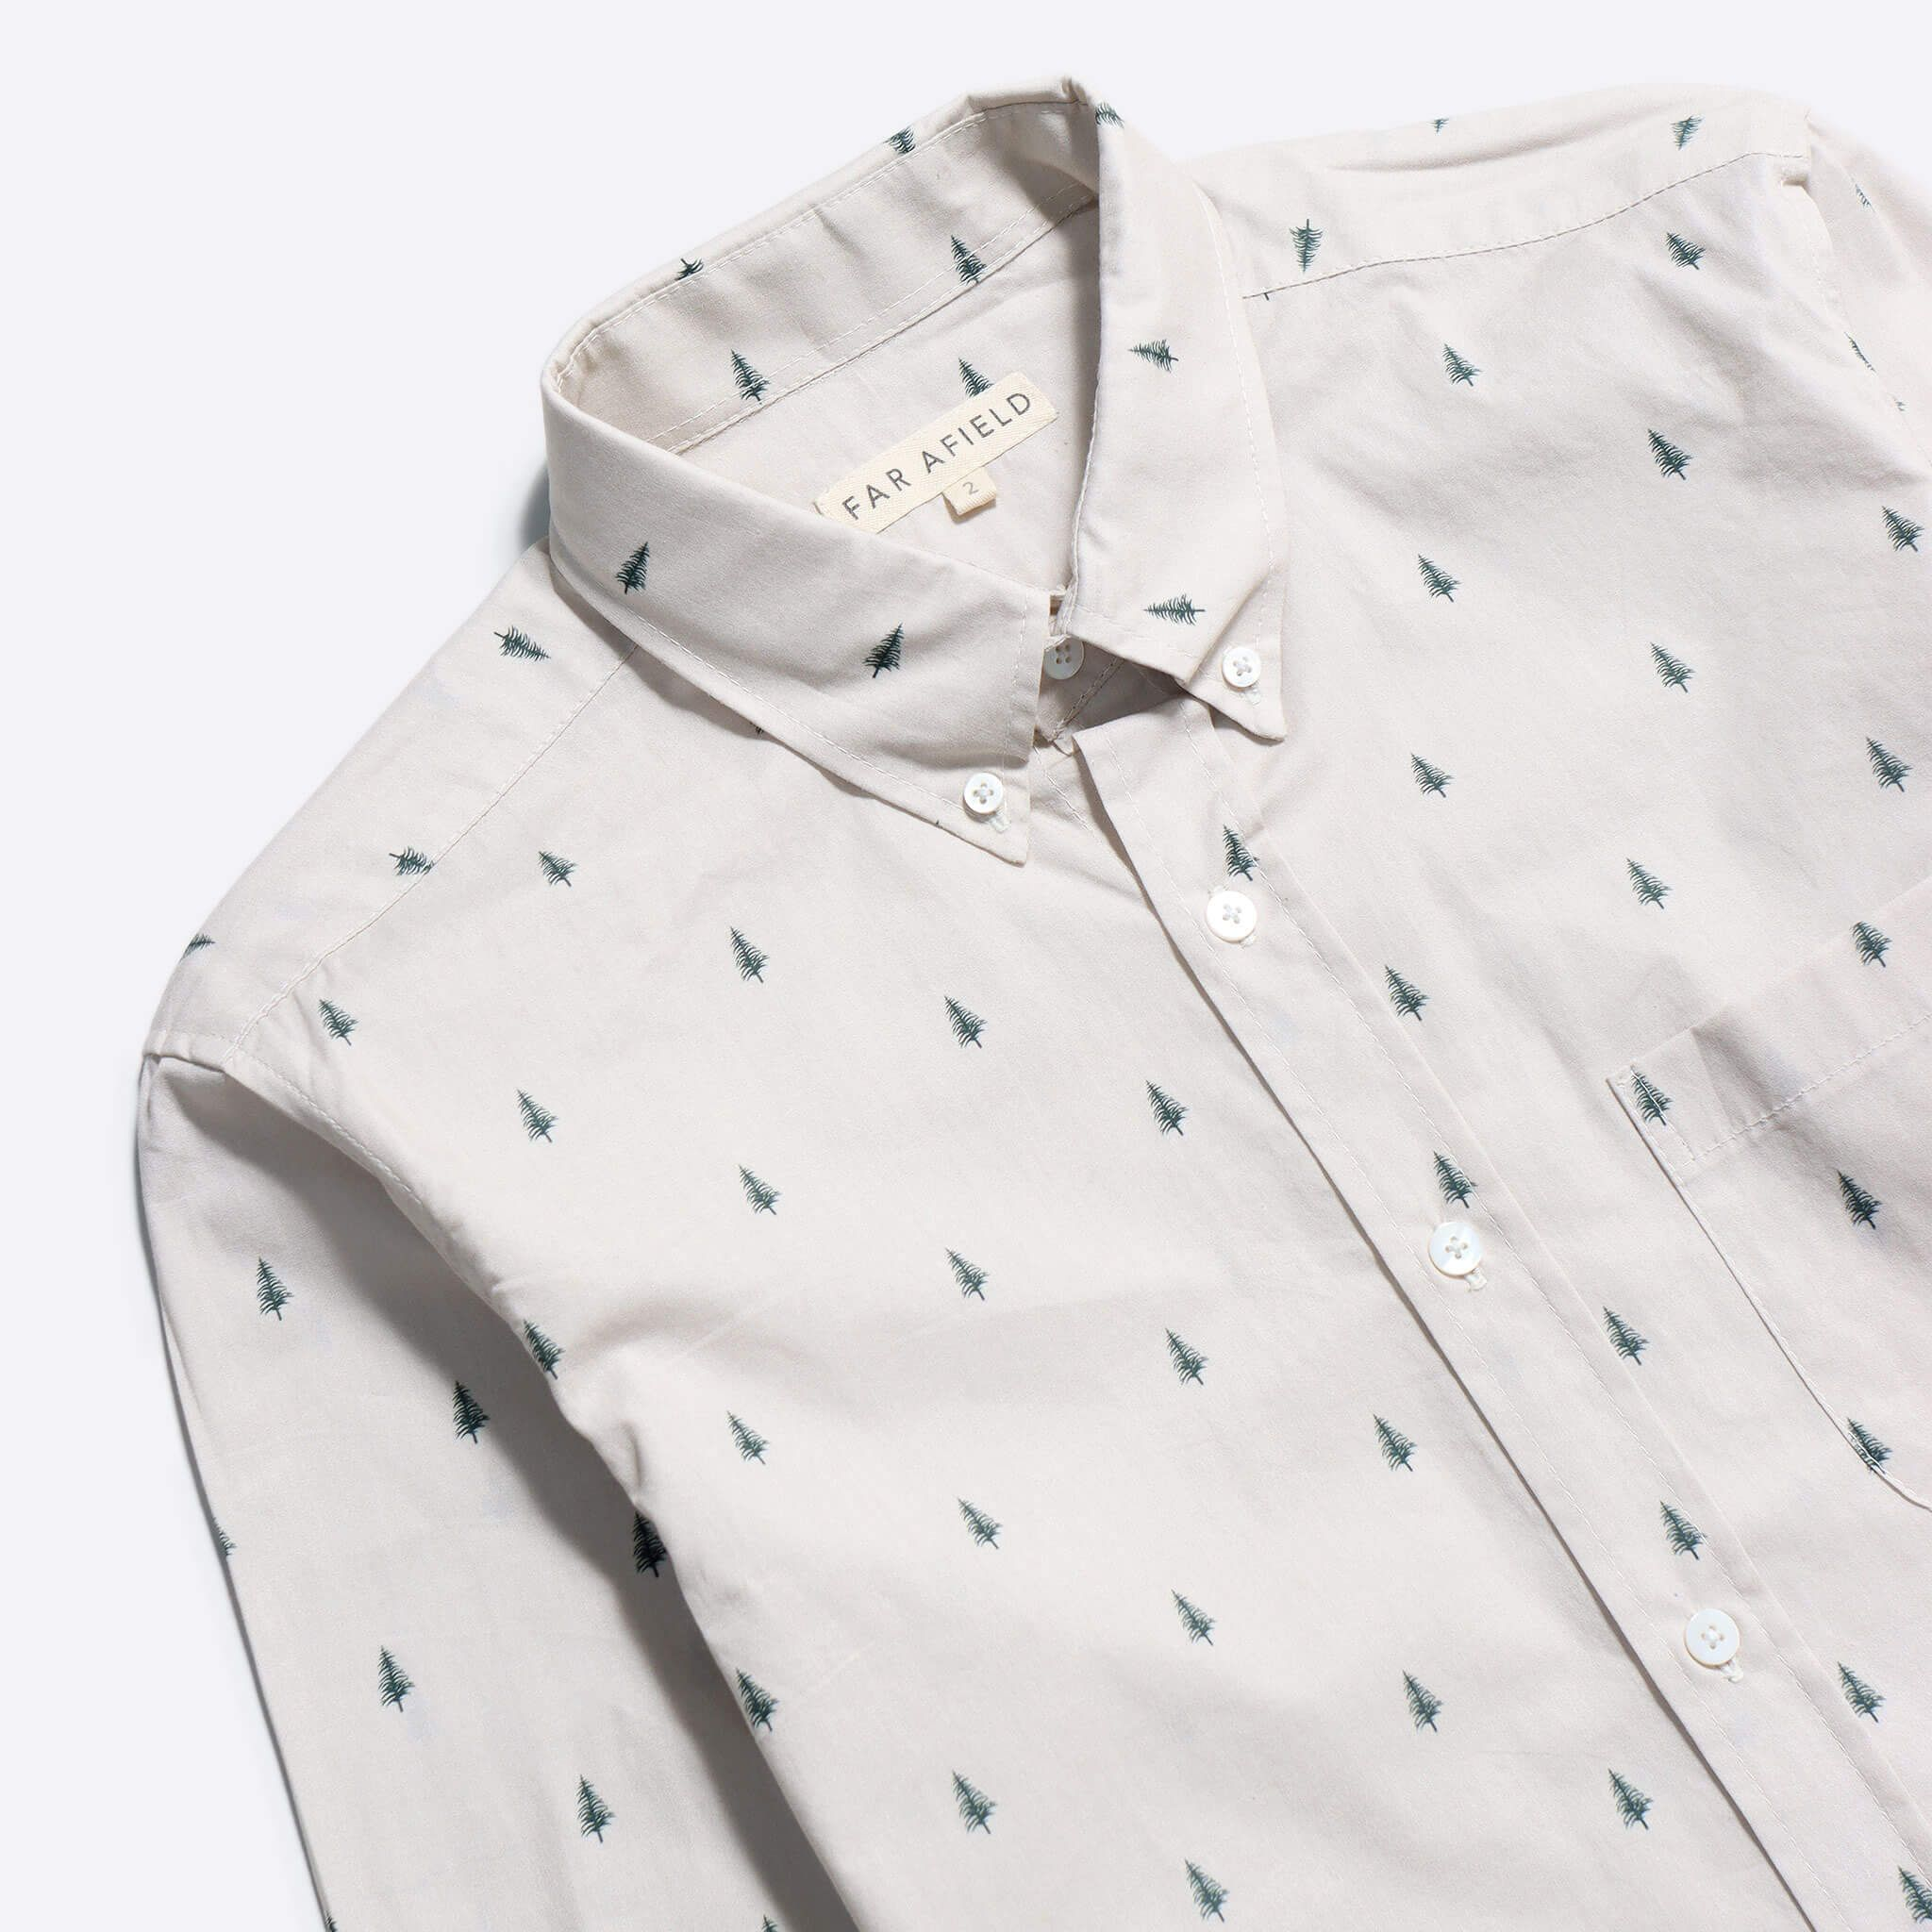 Far Afield Mod Button Down Long Sleeve Shirt a Off White Pine Tree Print Up-cycled Fabric 2